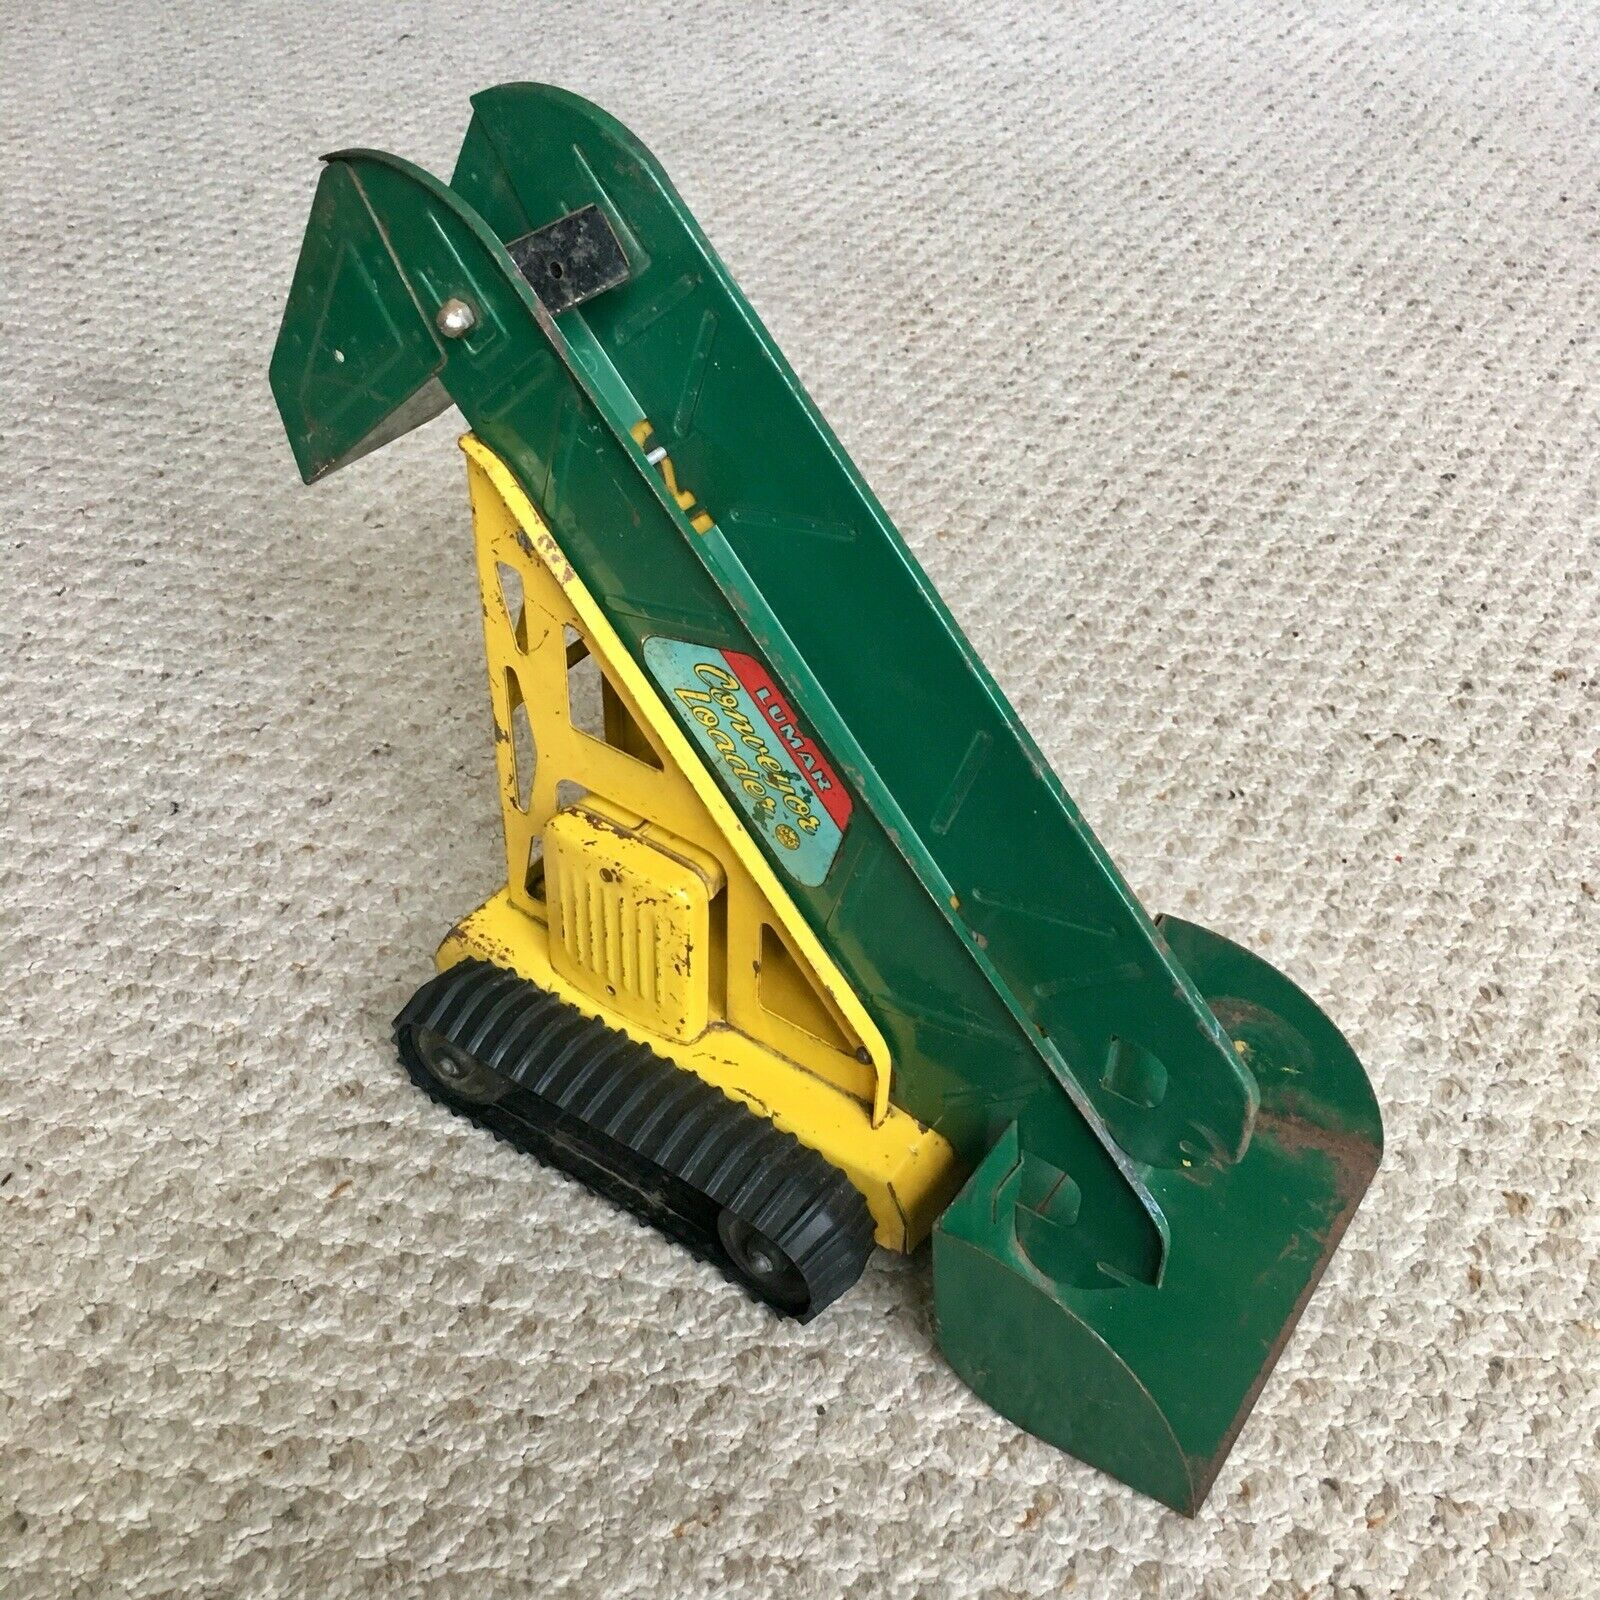 Vintage 1950s Marx Lumar Pressed Steel Conveyor Loader - Made in USA- RARE